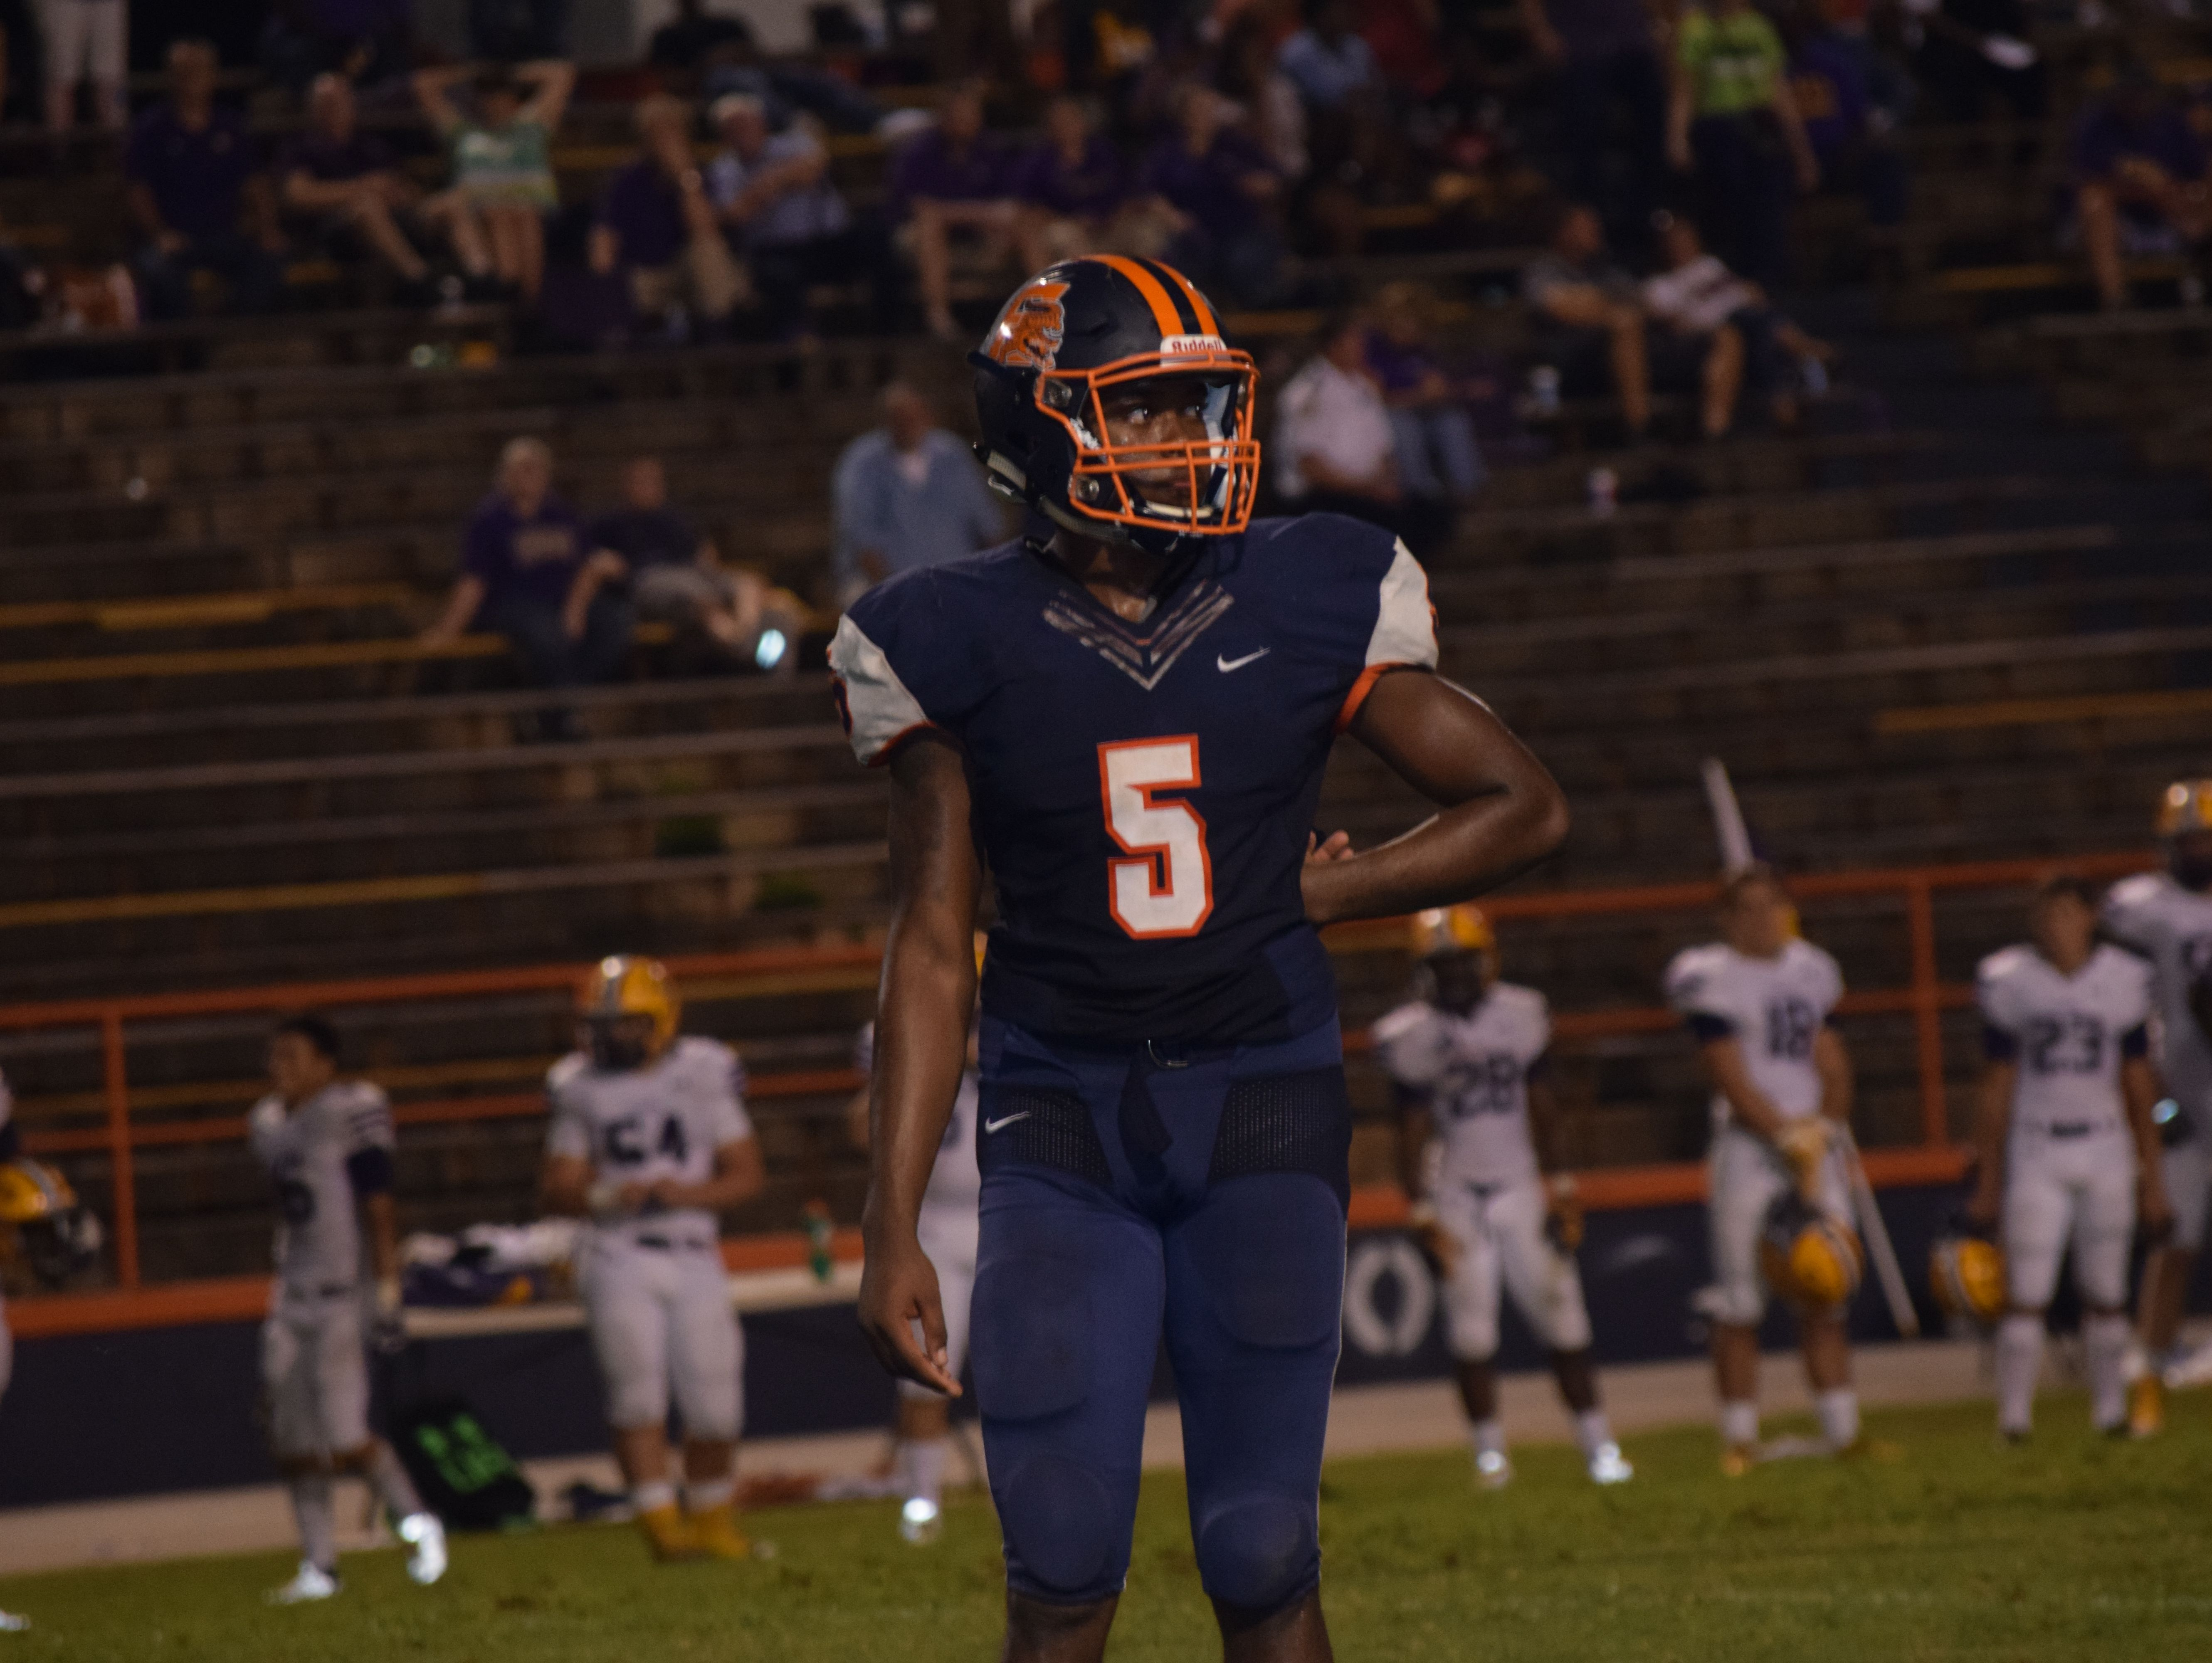 It was a tough night for Escambia High quarterback Z'khari Blocker and his teammates Friday night against Lake City-Columbia.